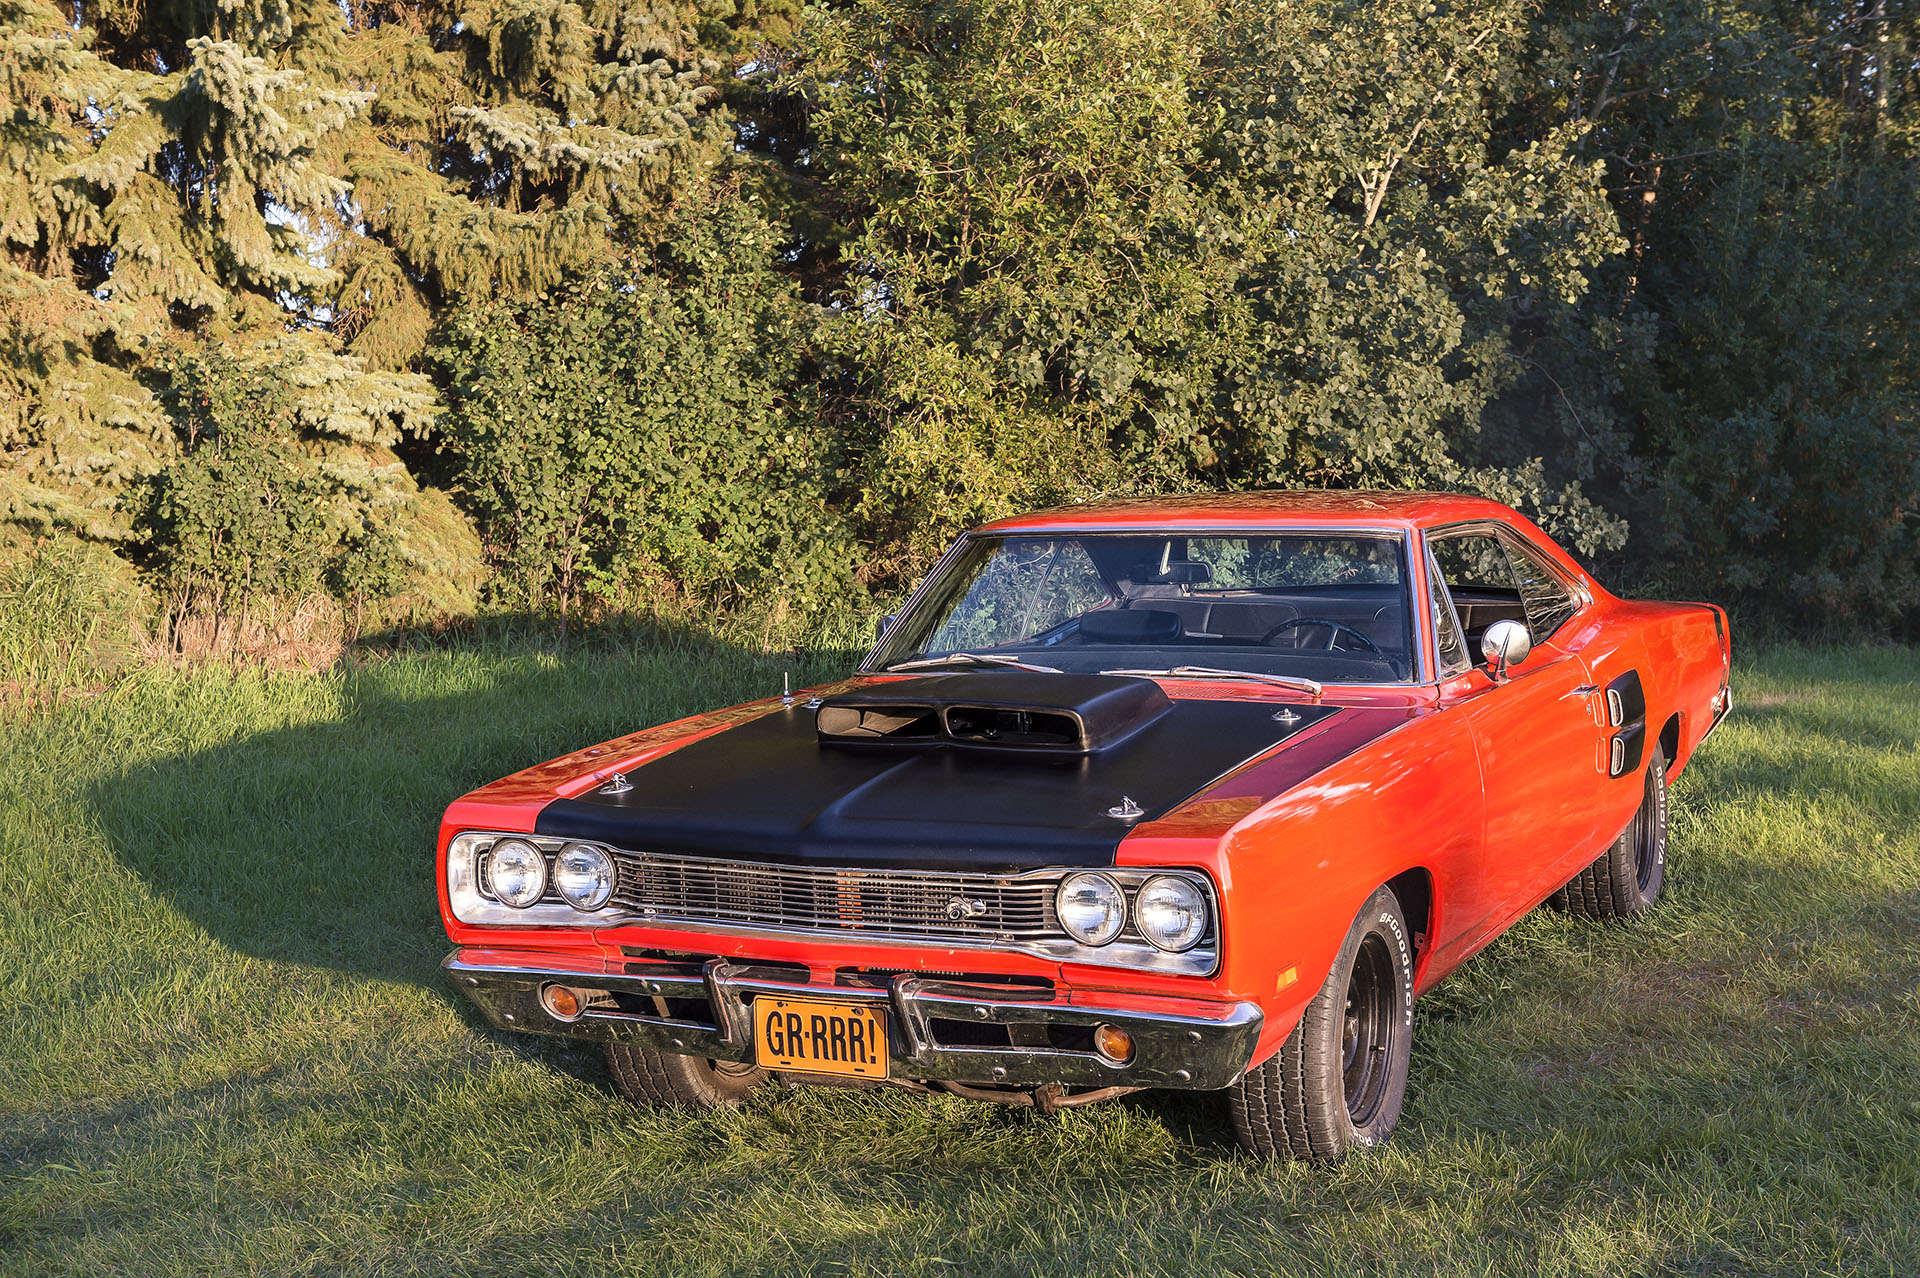 """1969 Dodge Super Bee   383 Engine with a 727 automatic transmission and a 8-3/4"""" Rear Diff. This car is locally owned and driven. You will see it and morevat Just Kruzin Kruz nights"""